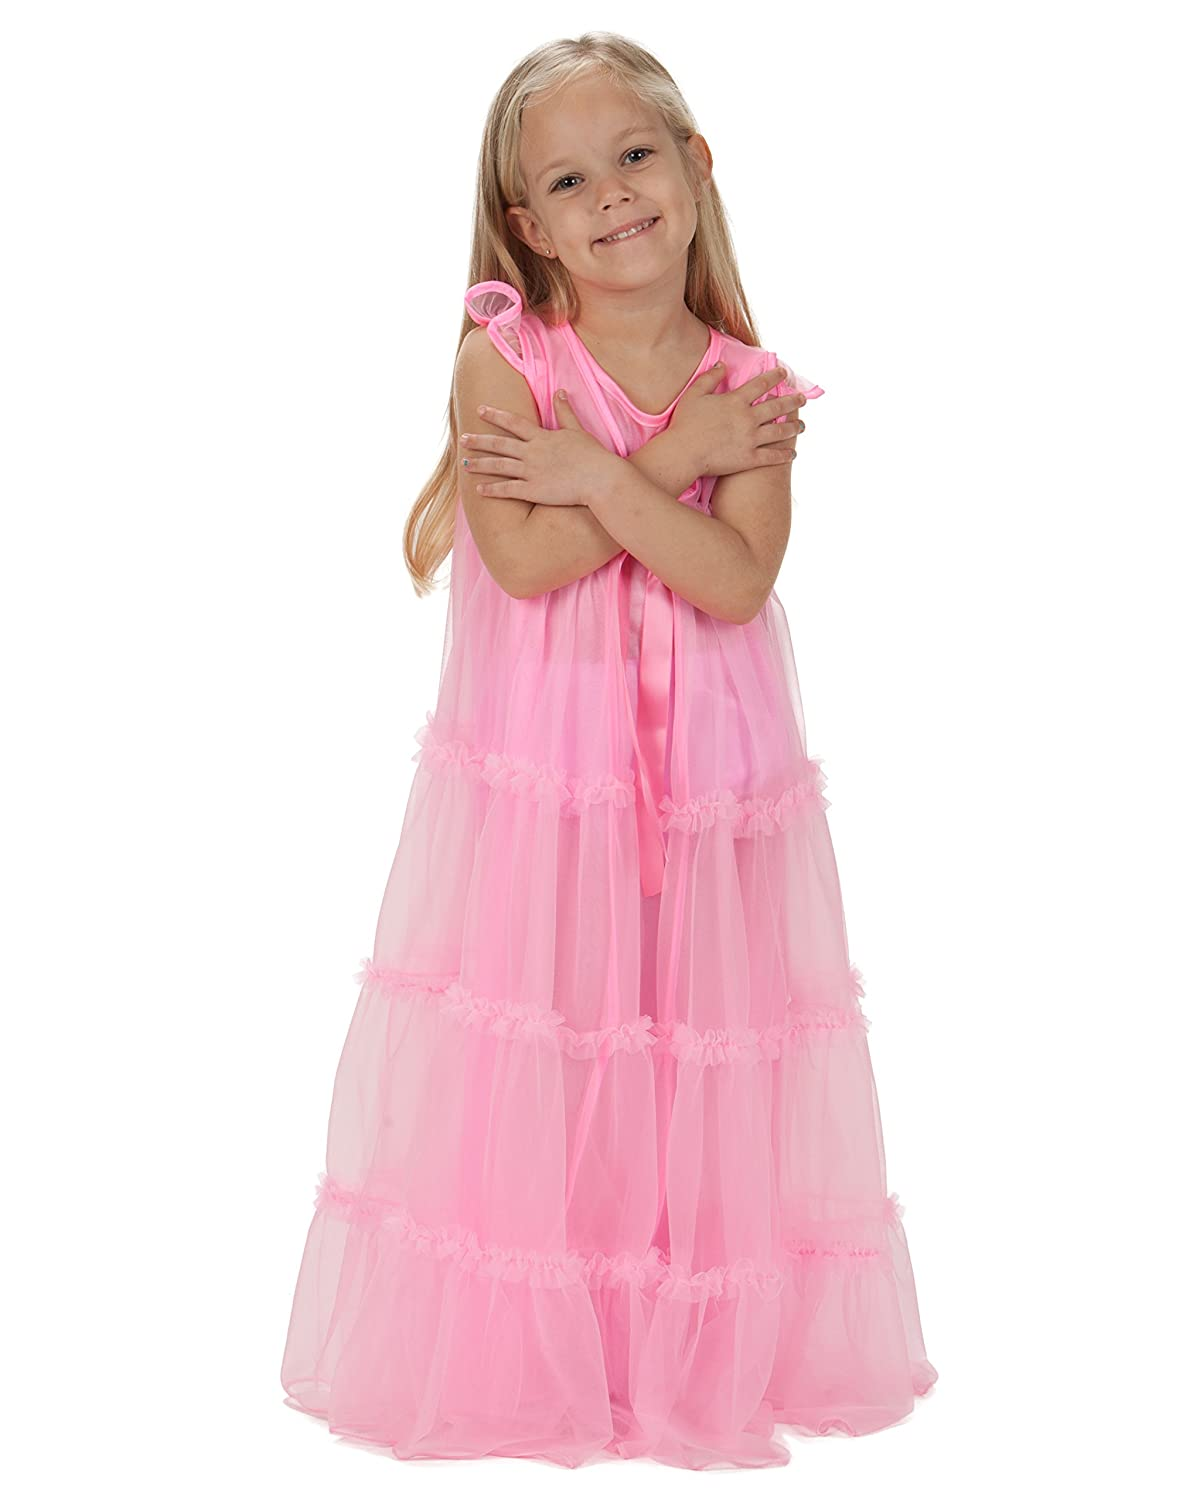 21812cc839 Amazon.com  Laura Dare Big Girls Bright Pink Princess Peignoir Nightgown  and Robe Set